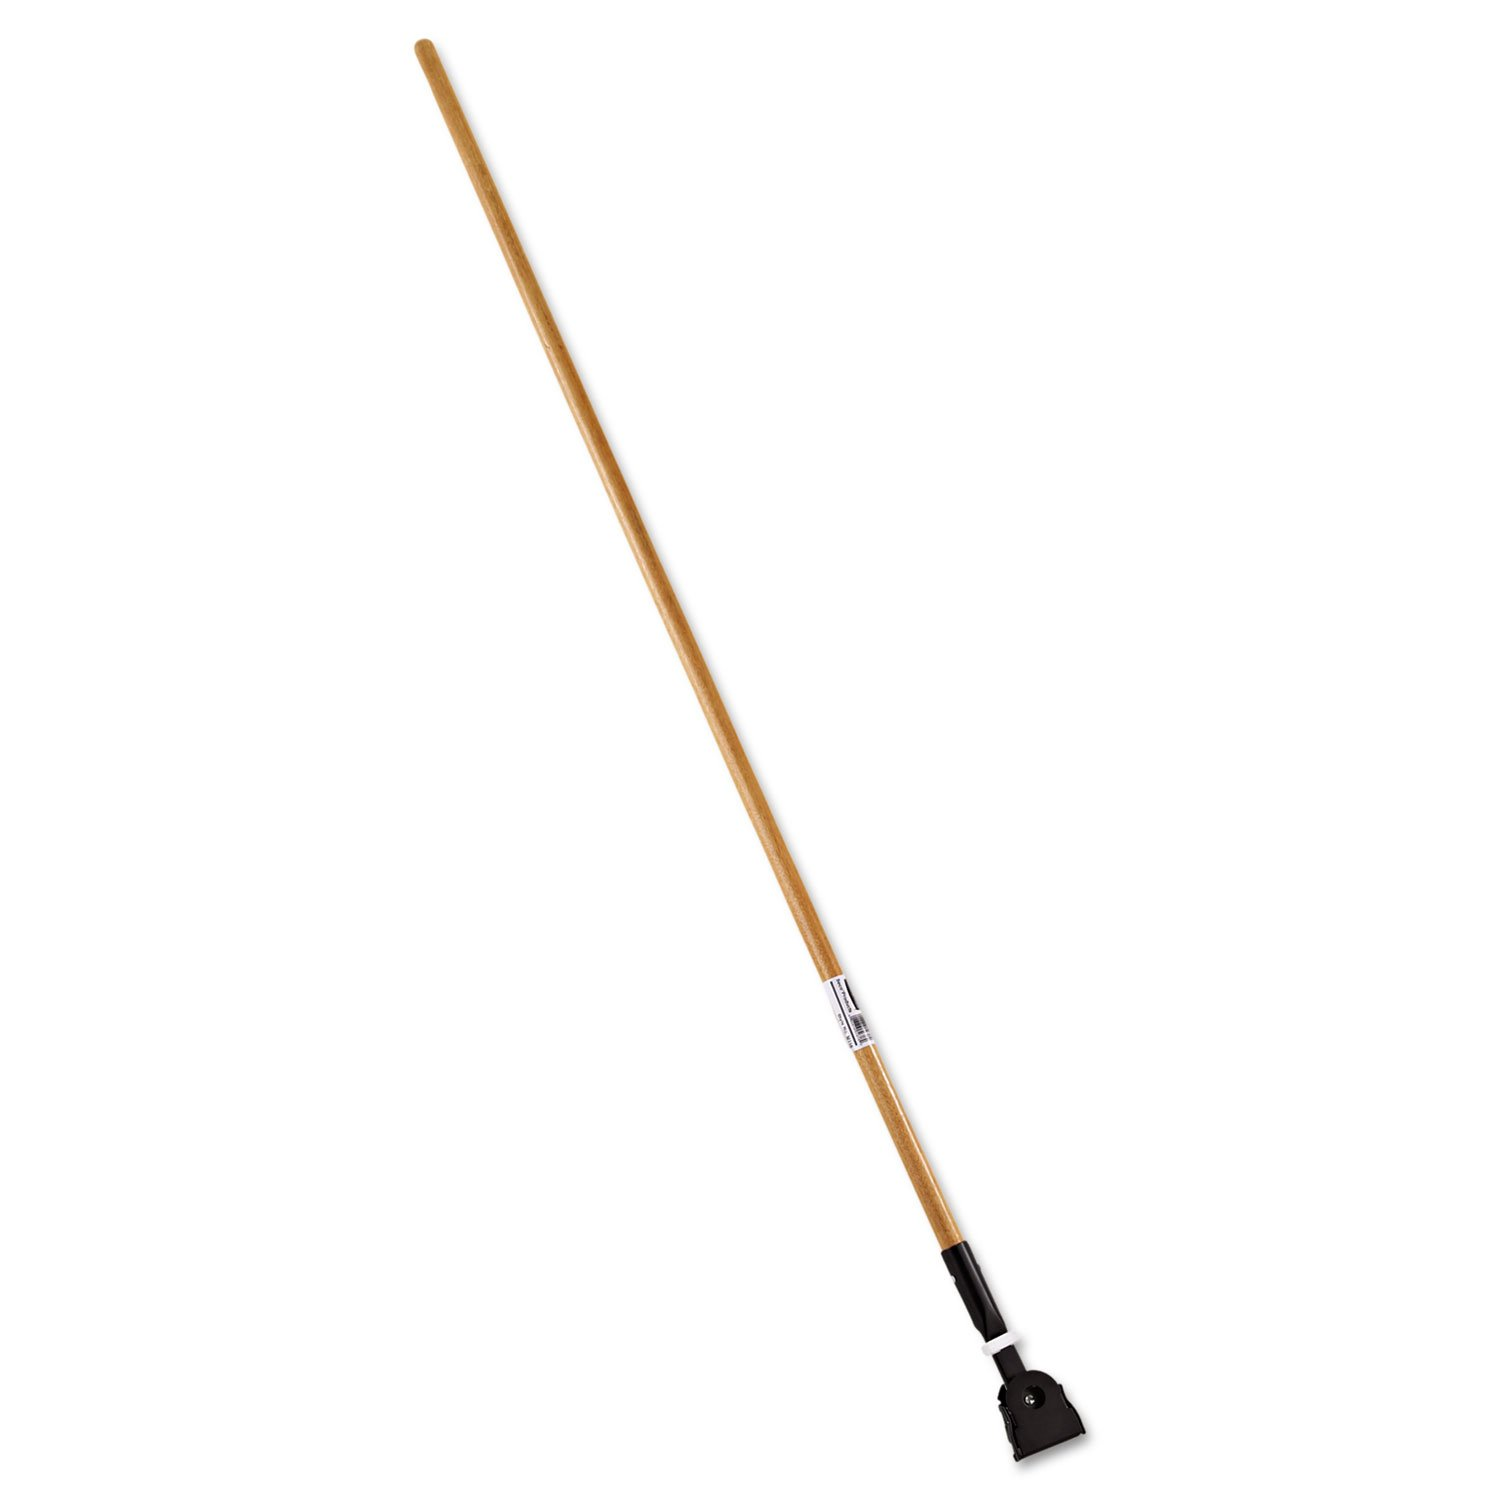 Rubbermaid Commercial Snap-On Dust Mop Handle, 1 1/2 dia x 60, Natural